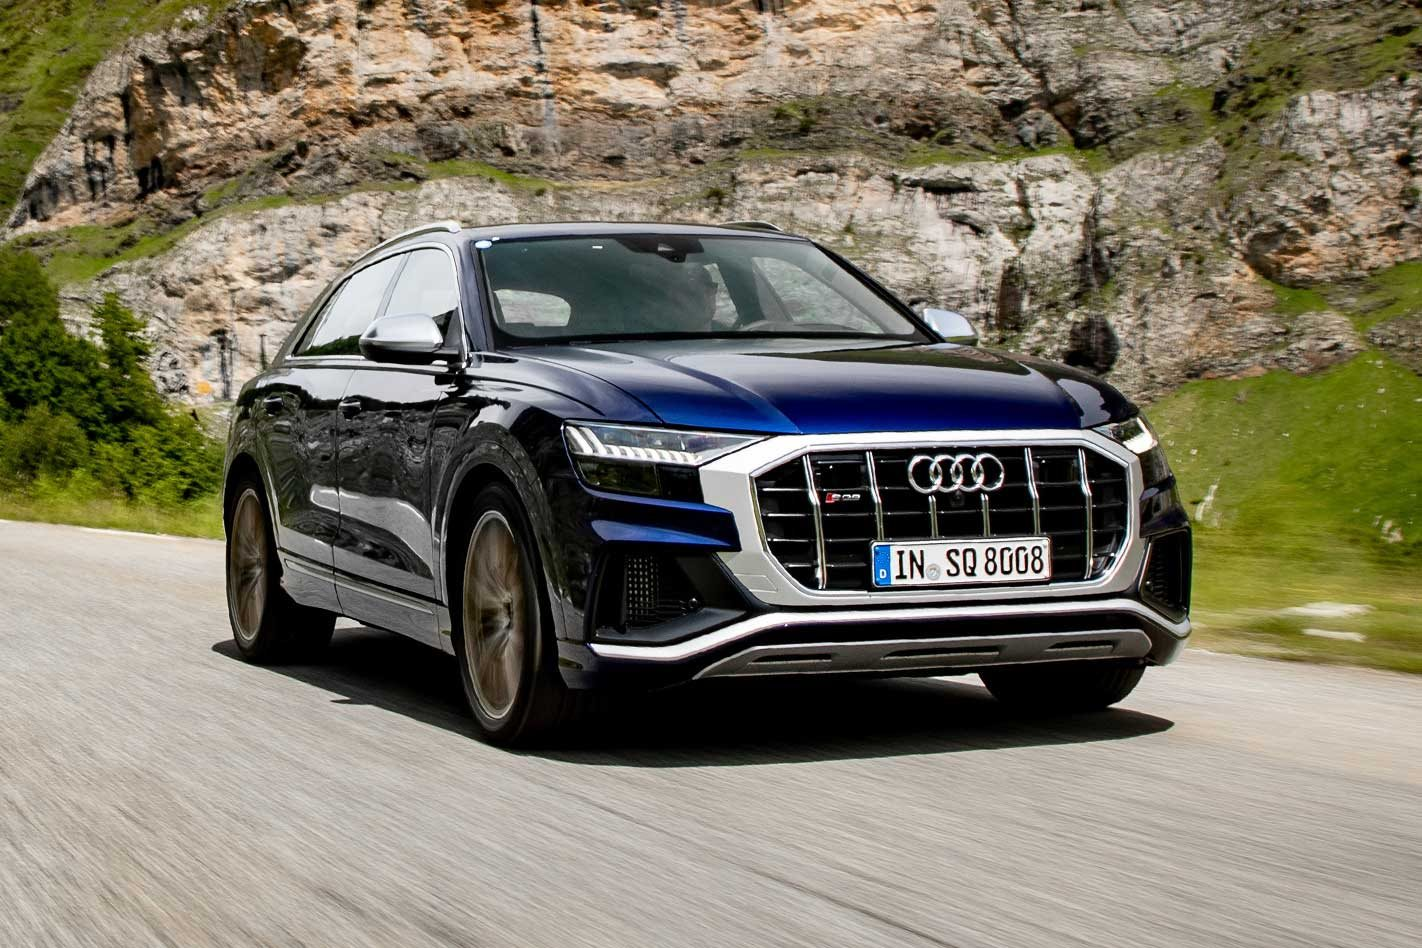 2019 Audi SQ8 TDI performance review